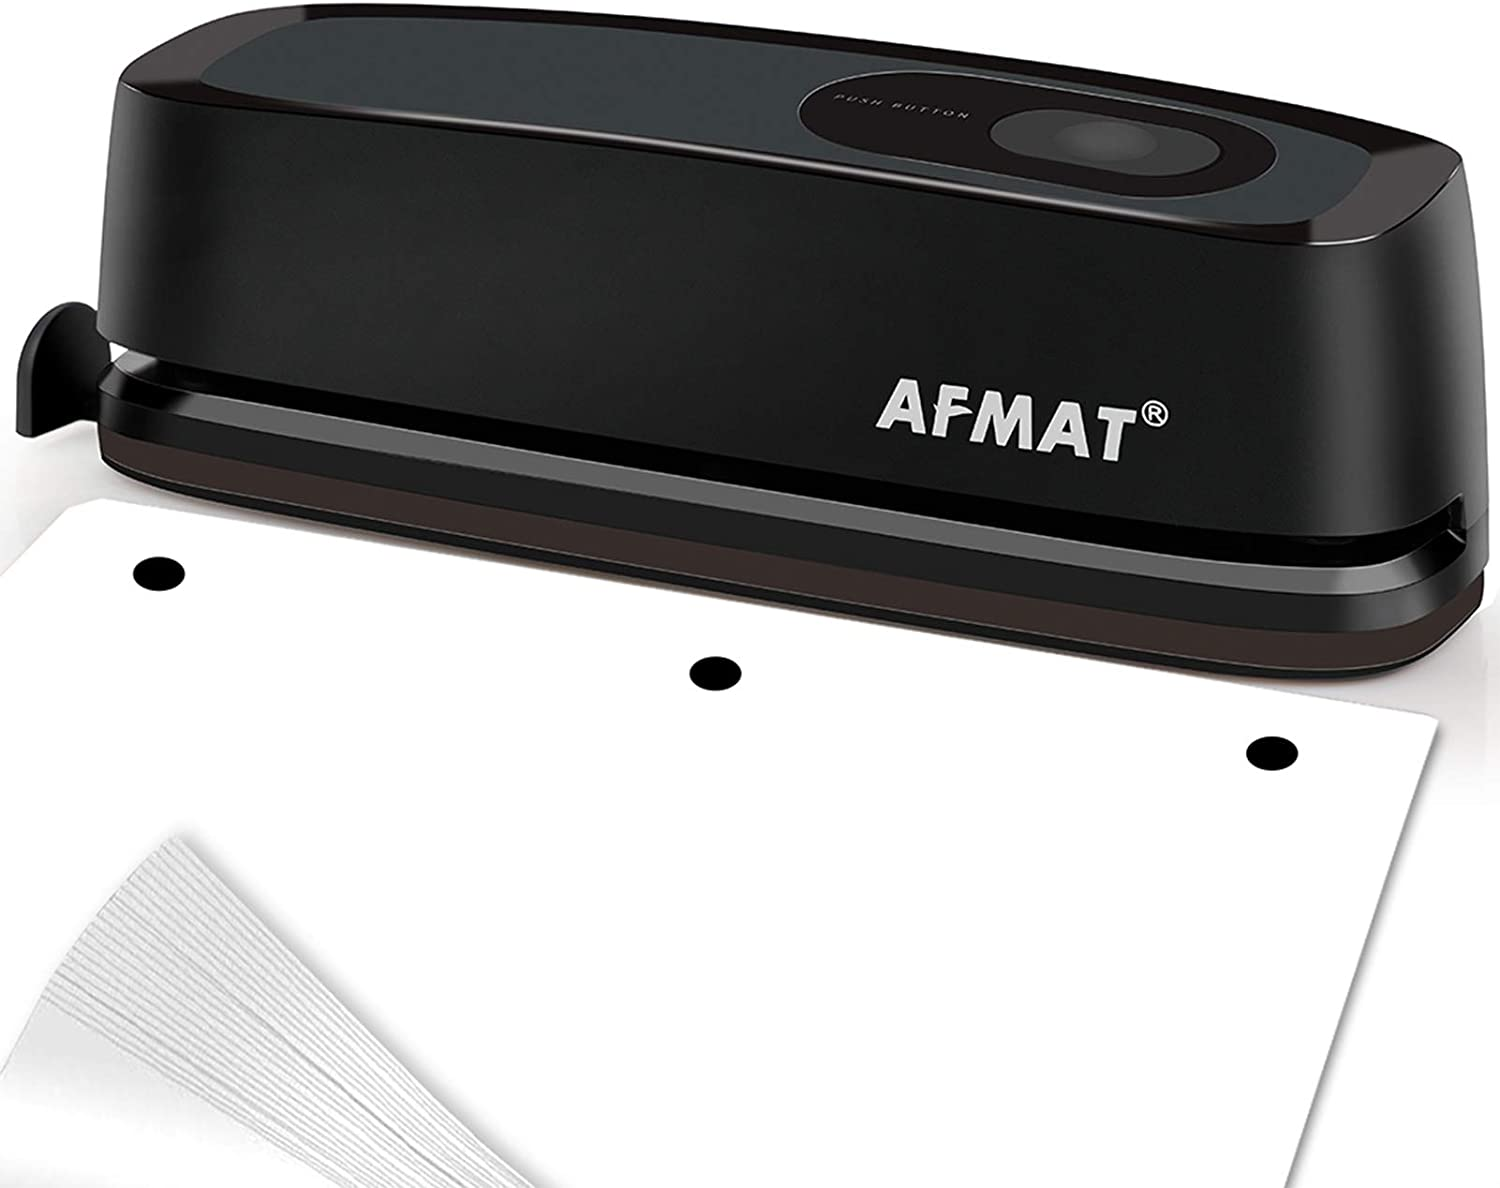 Electric Paper Punch, VEARMOAD 3 Hole Punch Automatic Paper Puncher with 20 Sheet Punch Capacity & AC or Battery Operated, Heavy Duty Durable Hole Puncher for Office School Studio (Black)